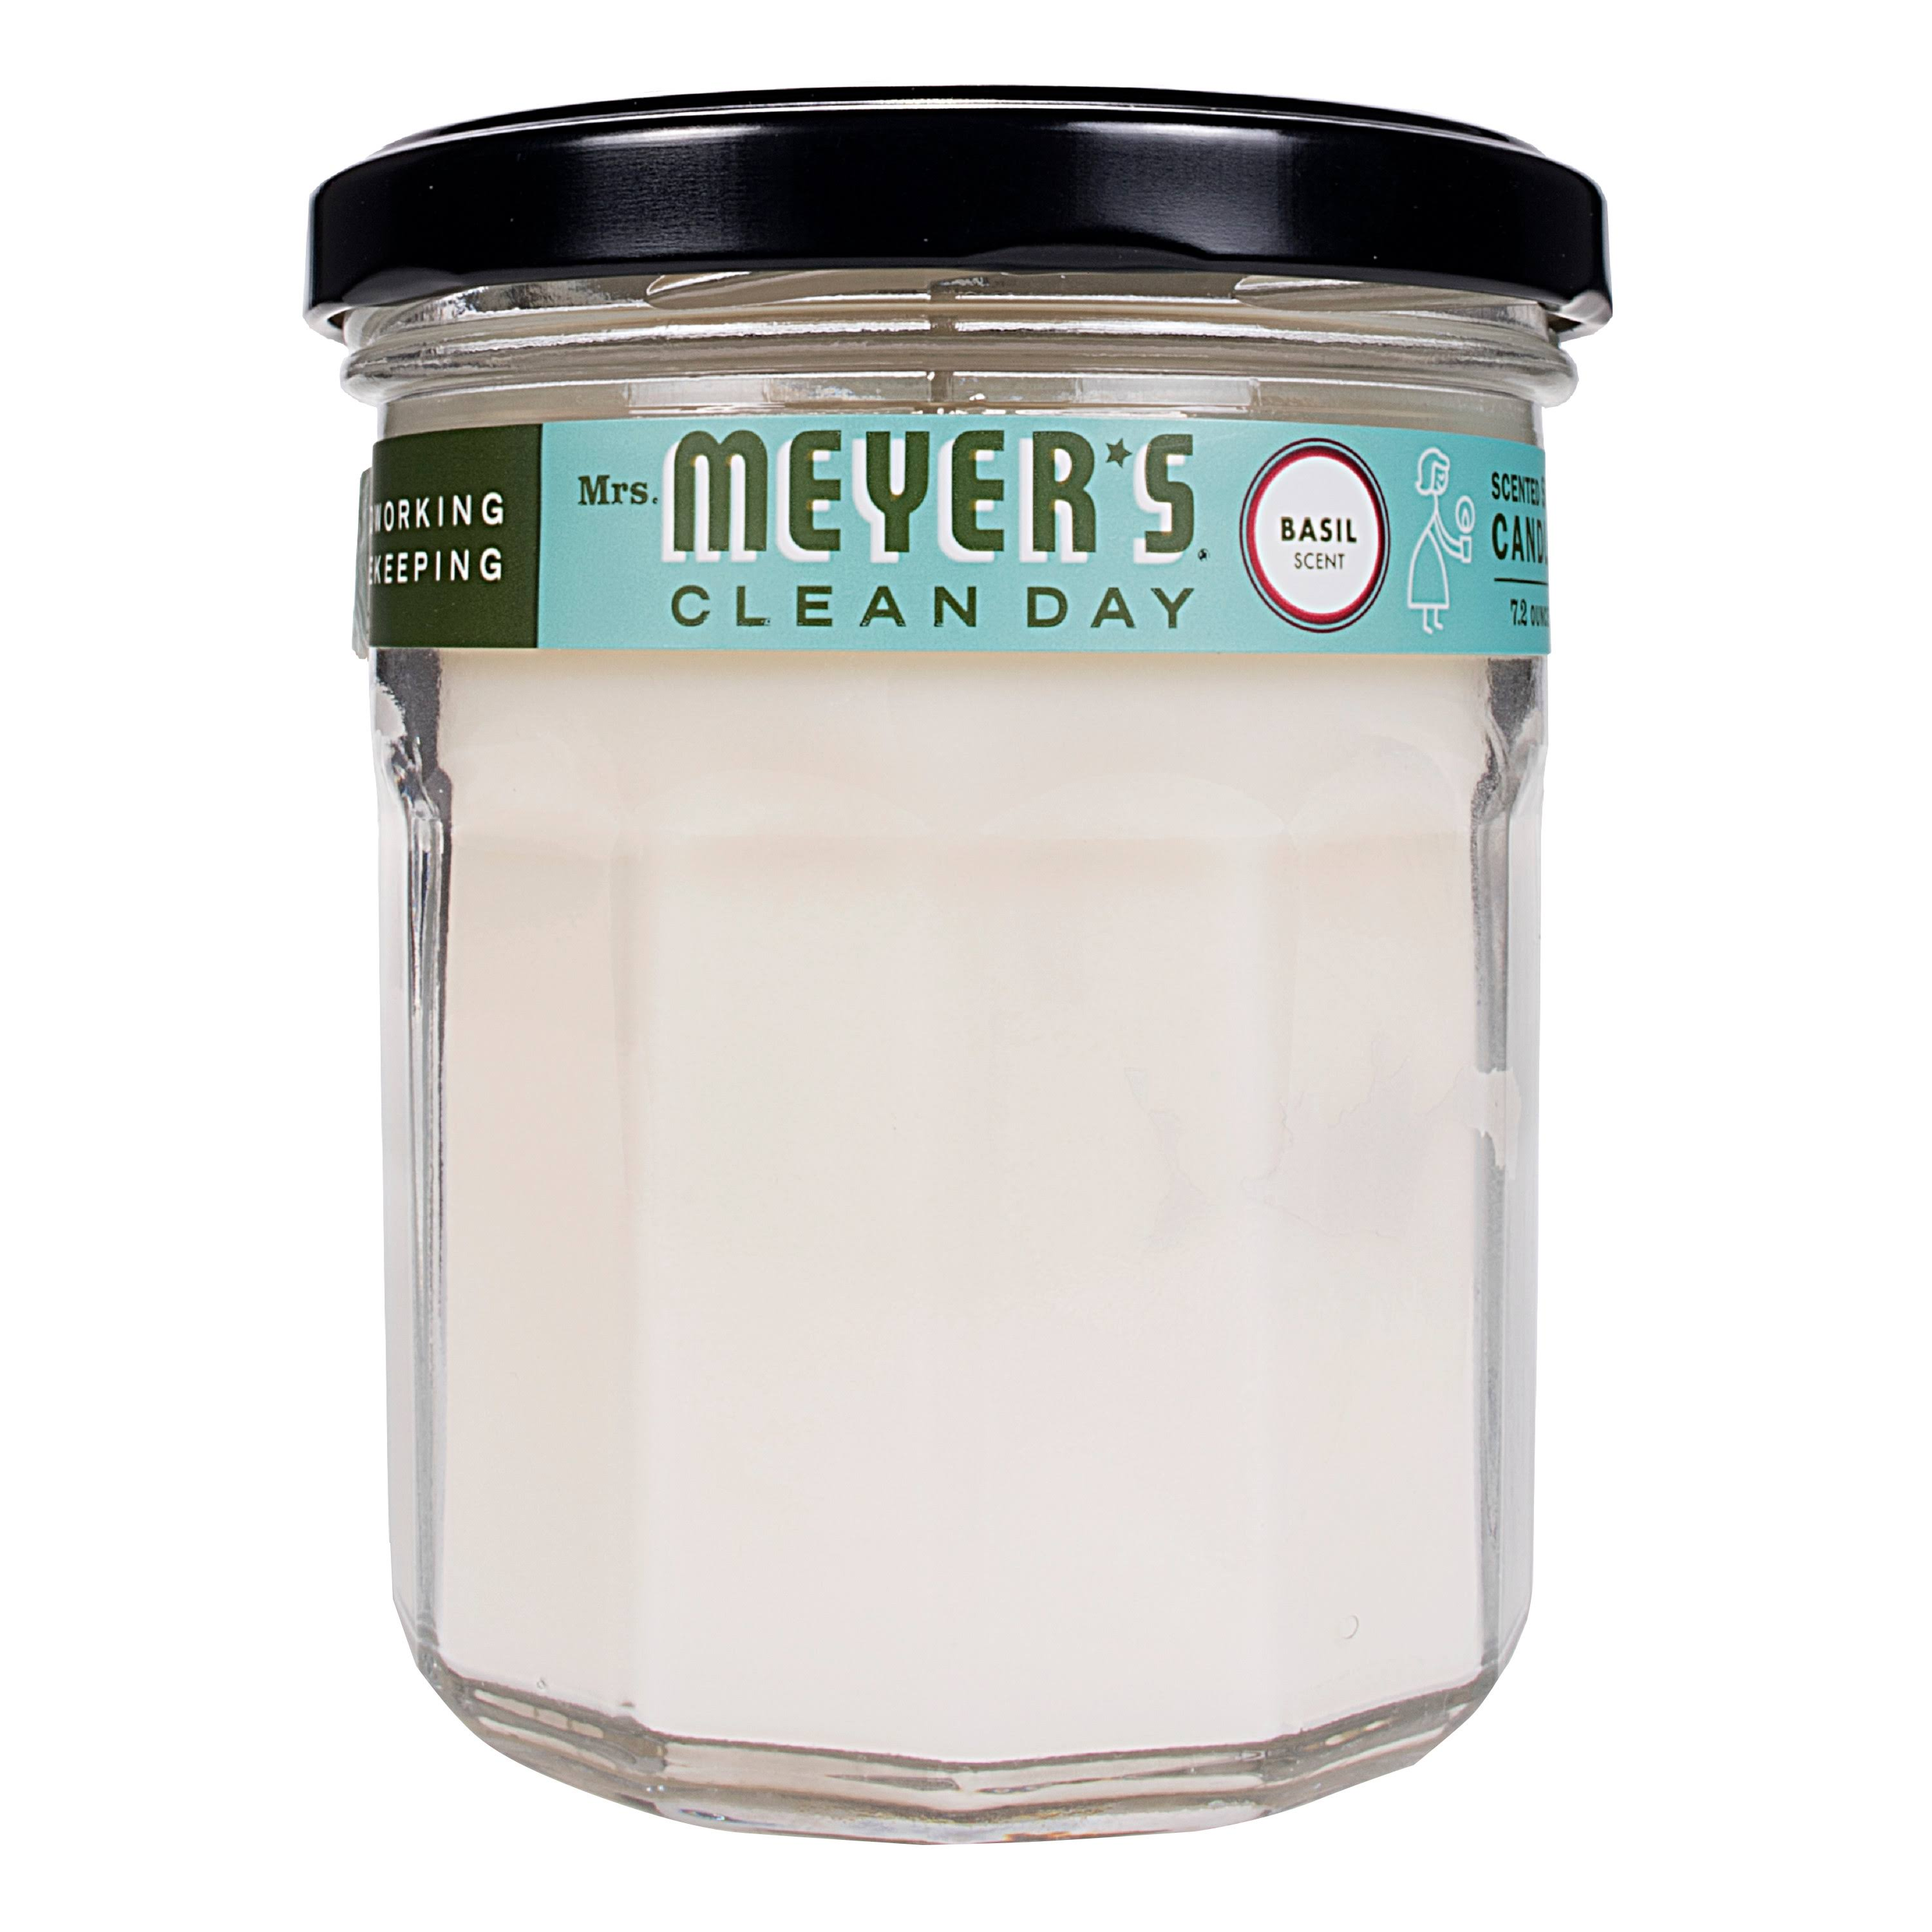 Mrs. Meyer's Clean Day Soy Candle - Scented Basil Jar, 210ml